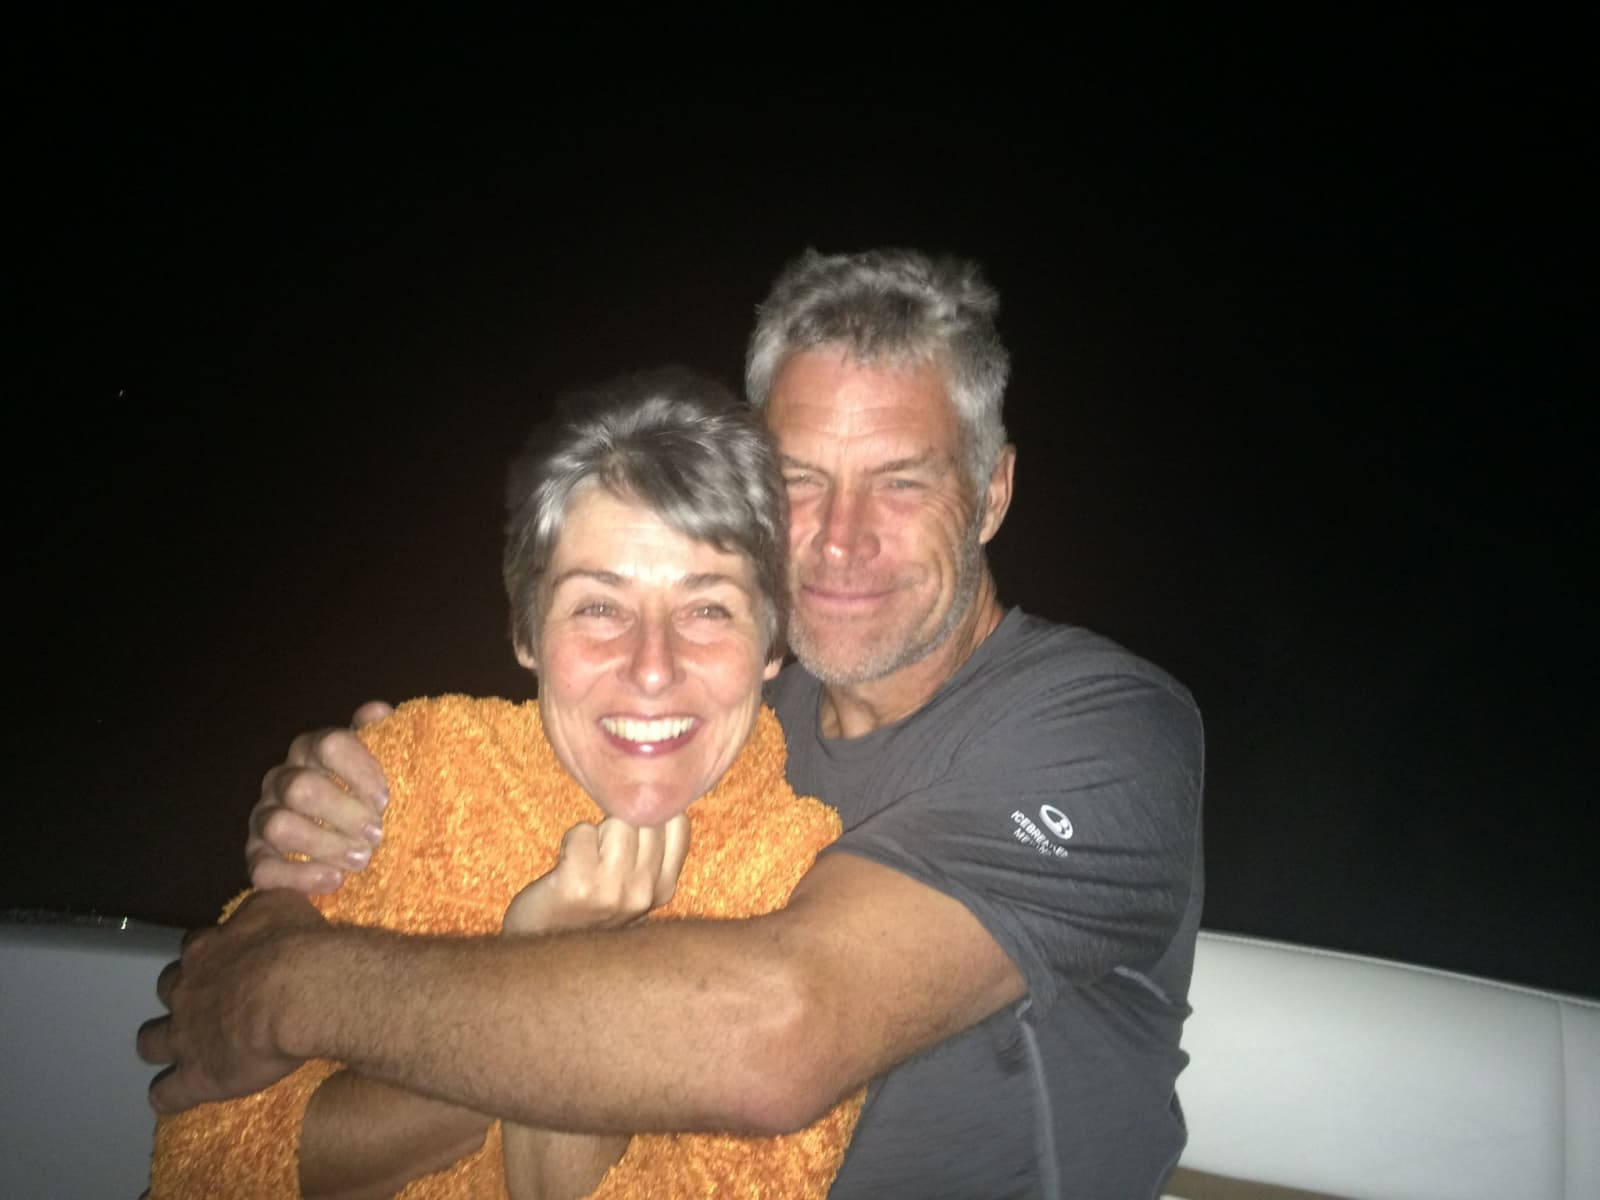 David & Alison from Creston, British Columbia, Canada